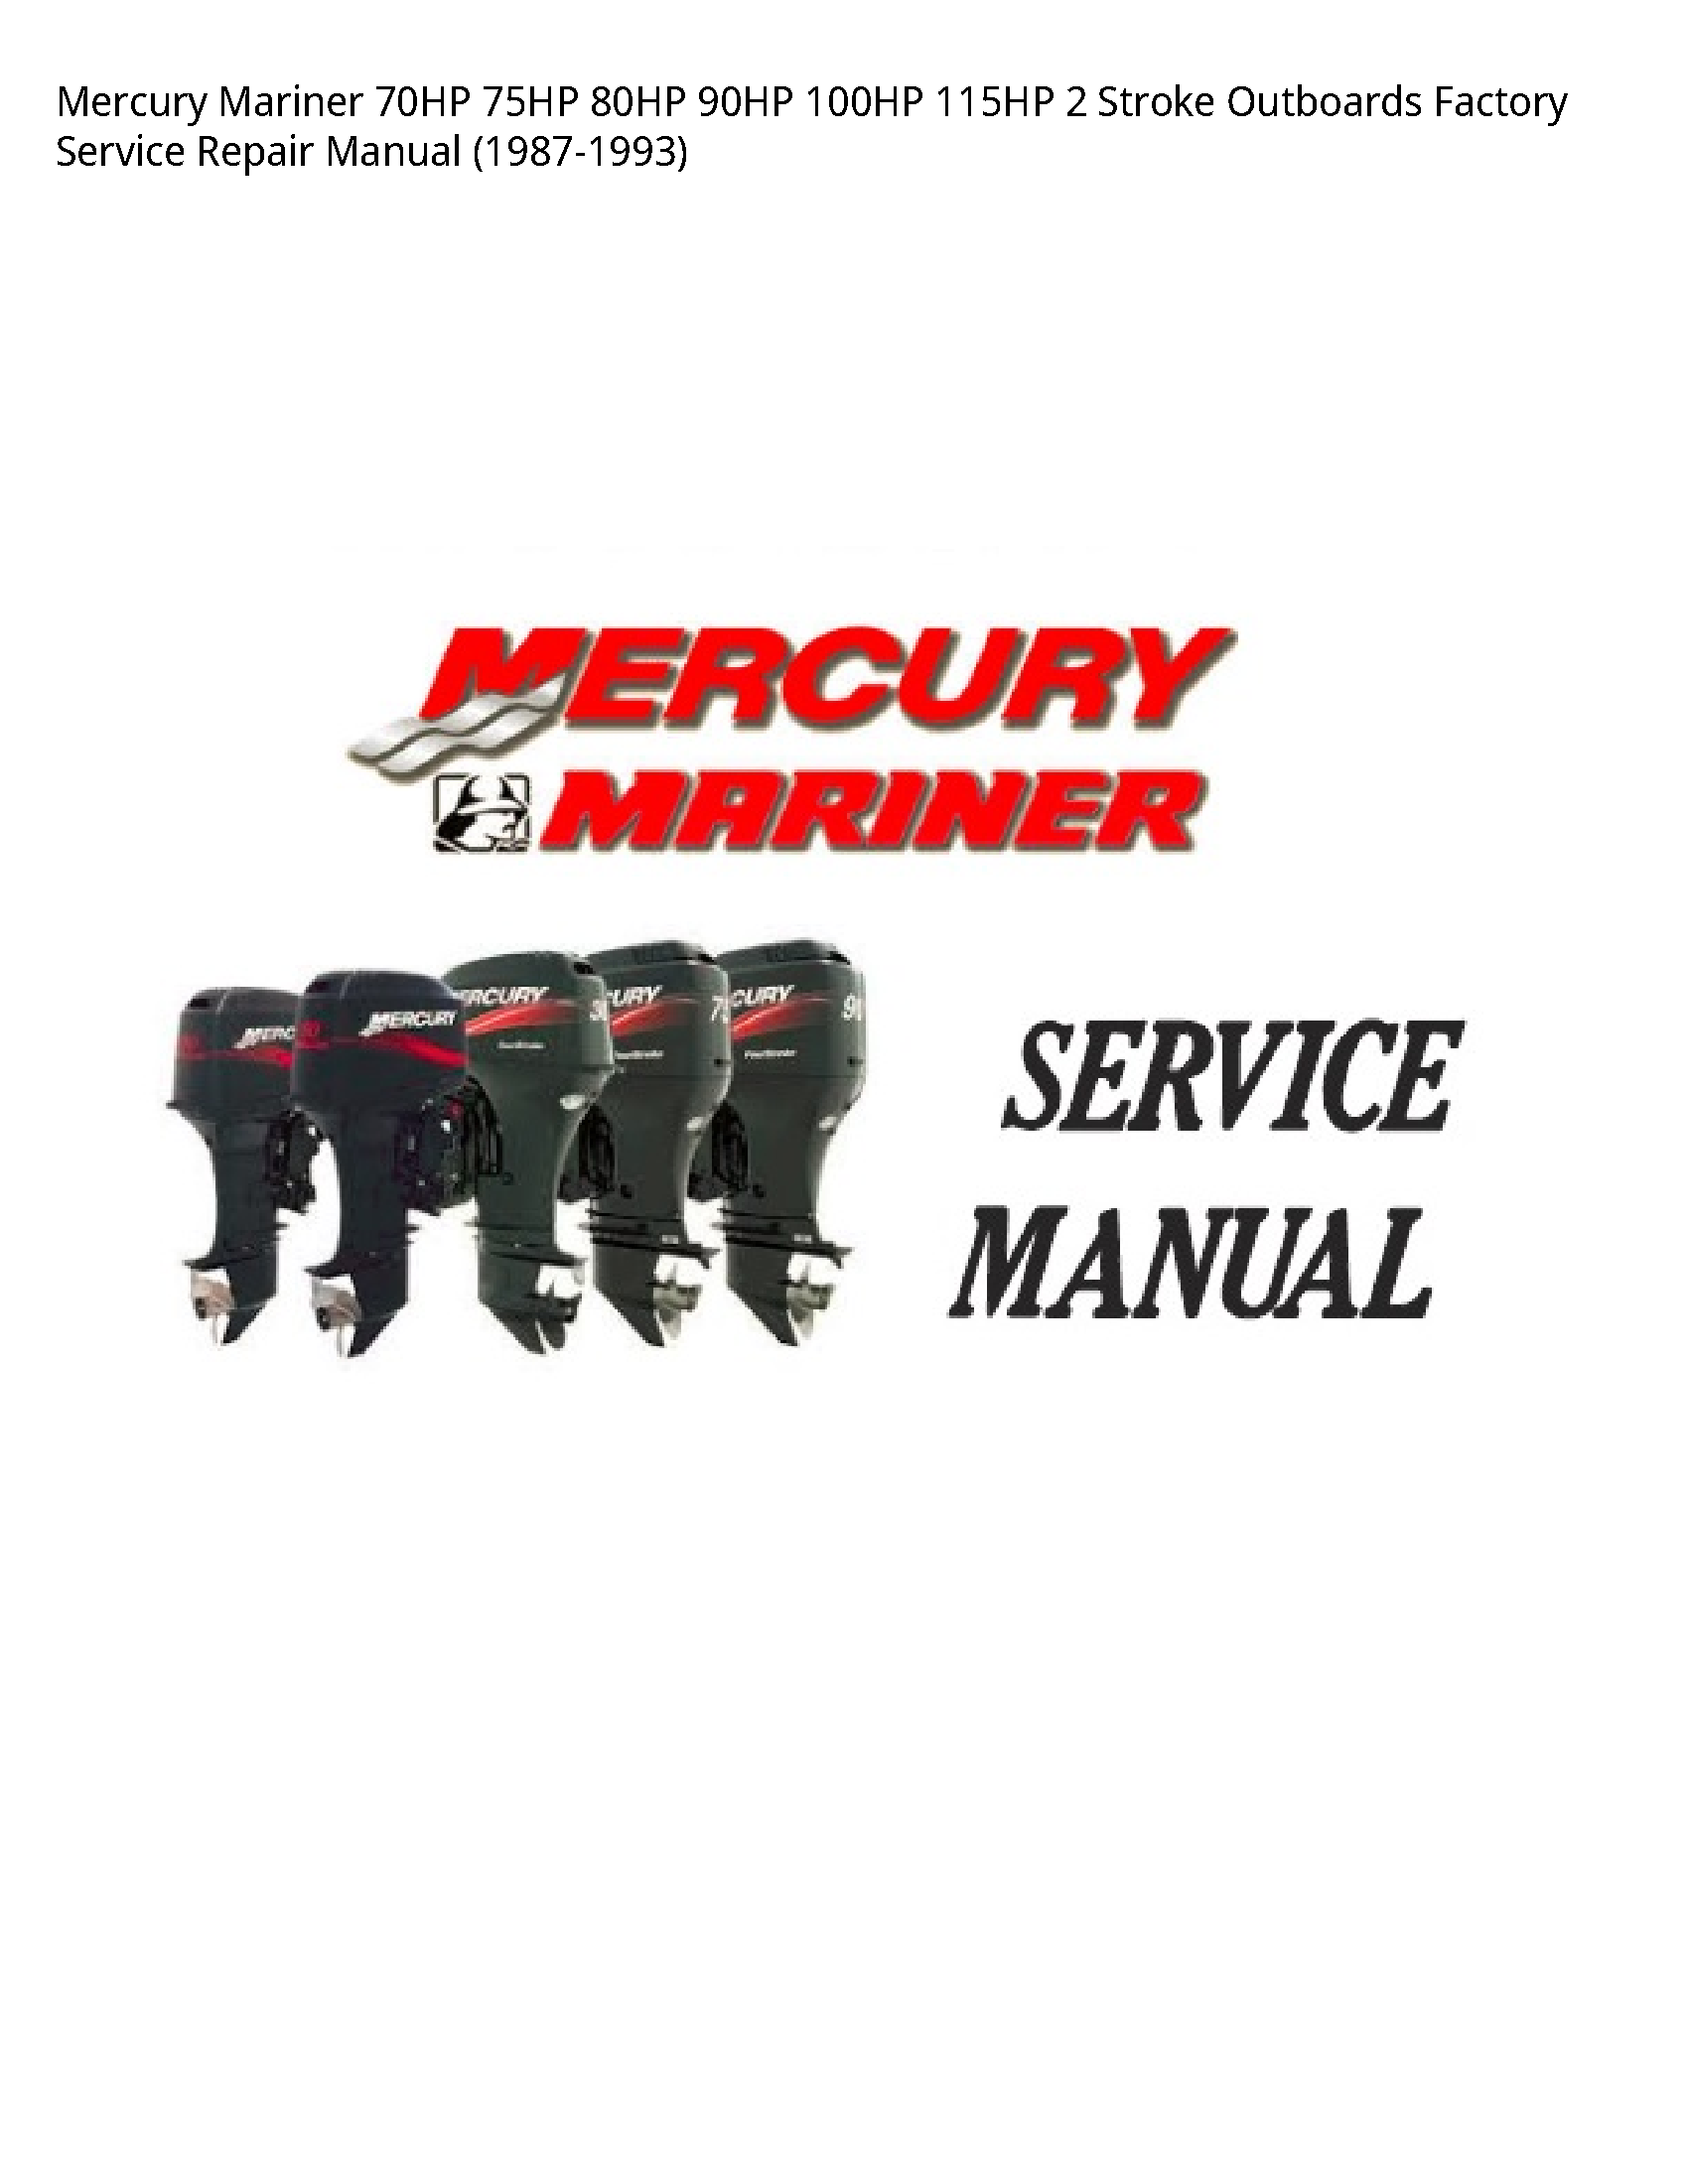 Mercury Mariner 70HP Stroke Outboards Factory manual